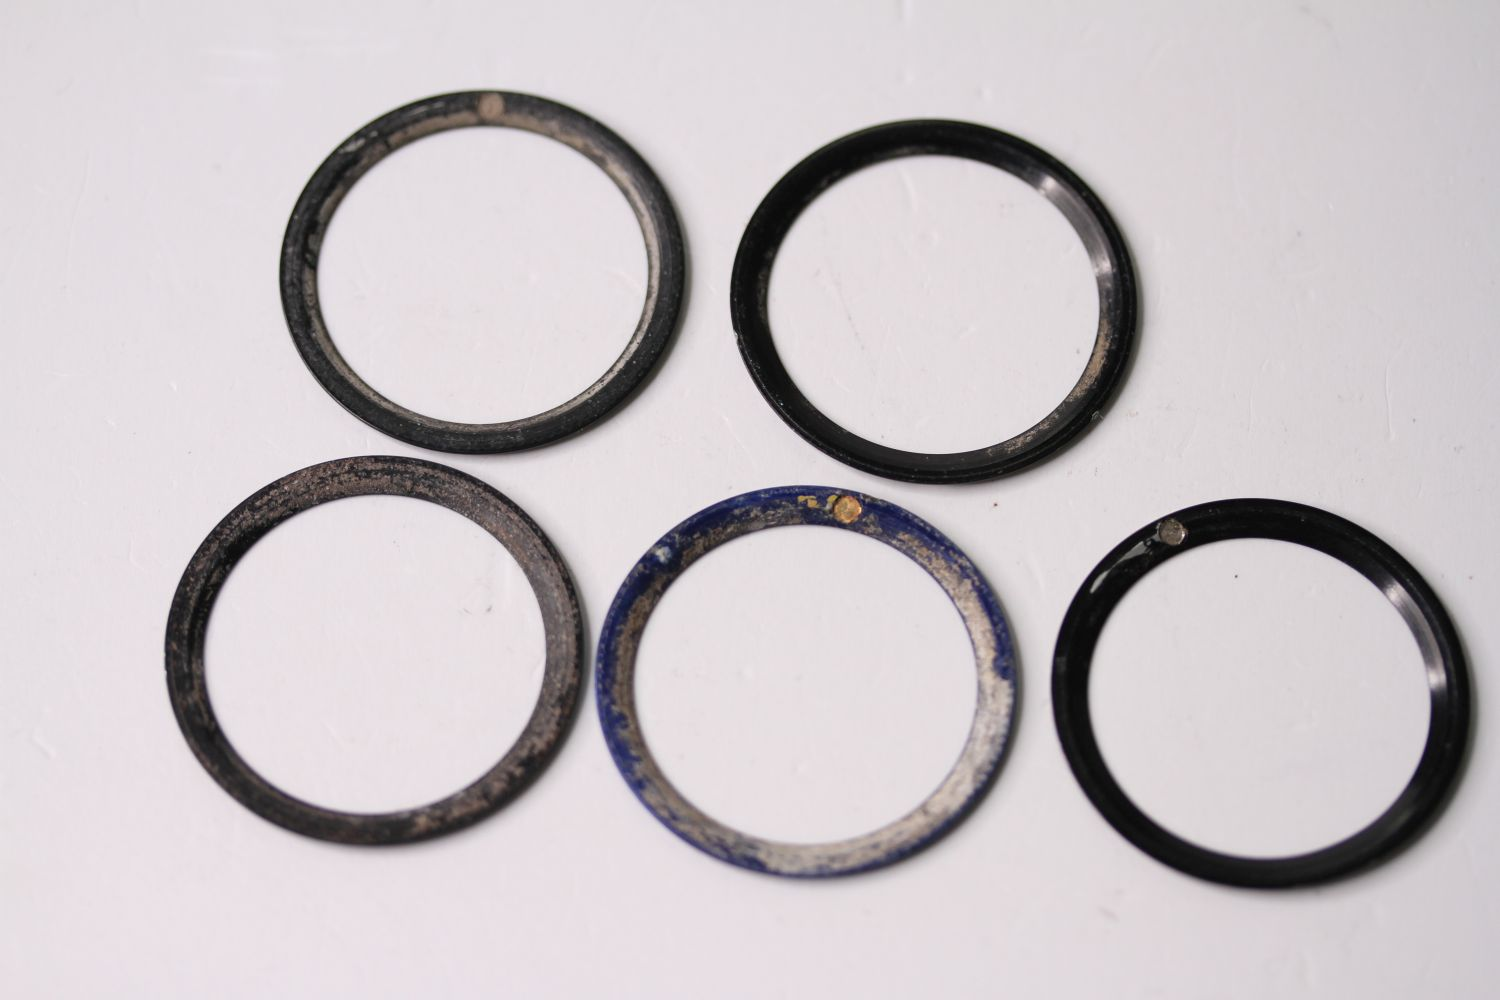 5x 1980s-1990s Rolex bezel inserts including, GMT, Submariner and Blue Bi Colour Submariner - Image 2 of 2